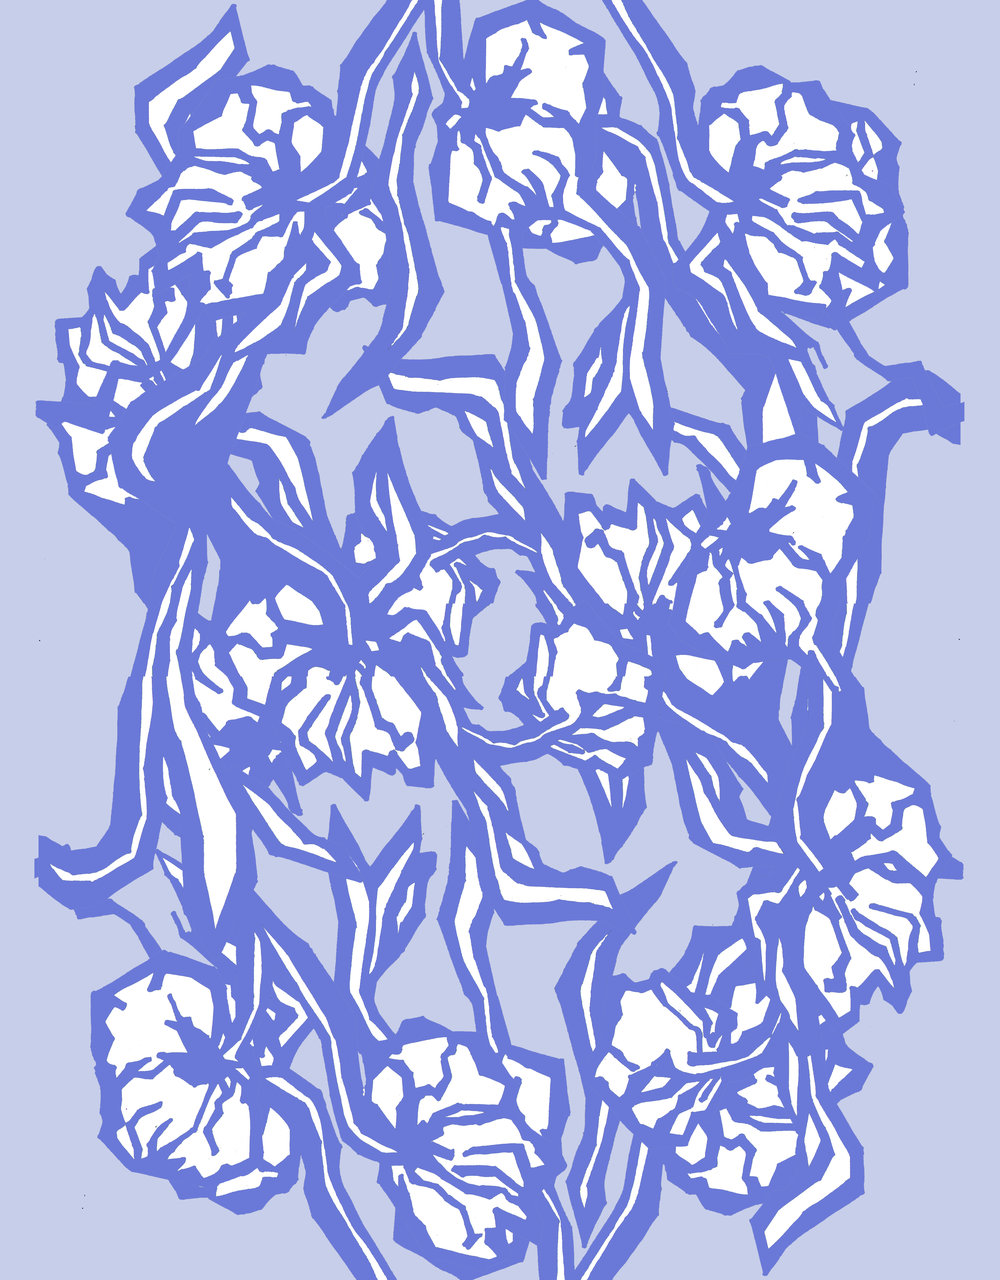 graphic+floral+4.jpg